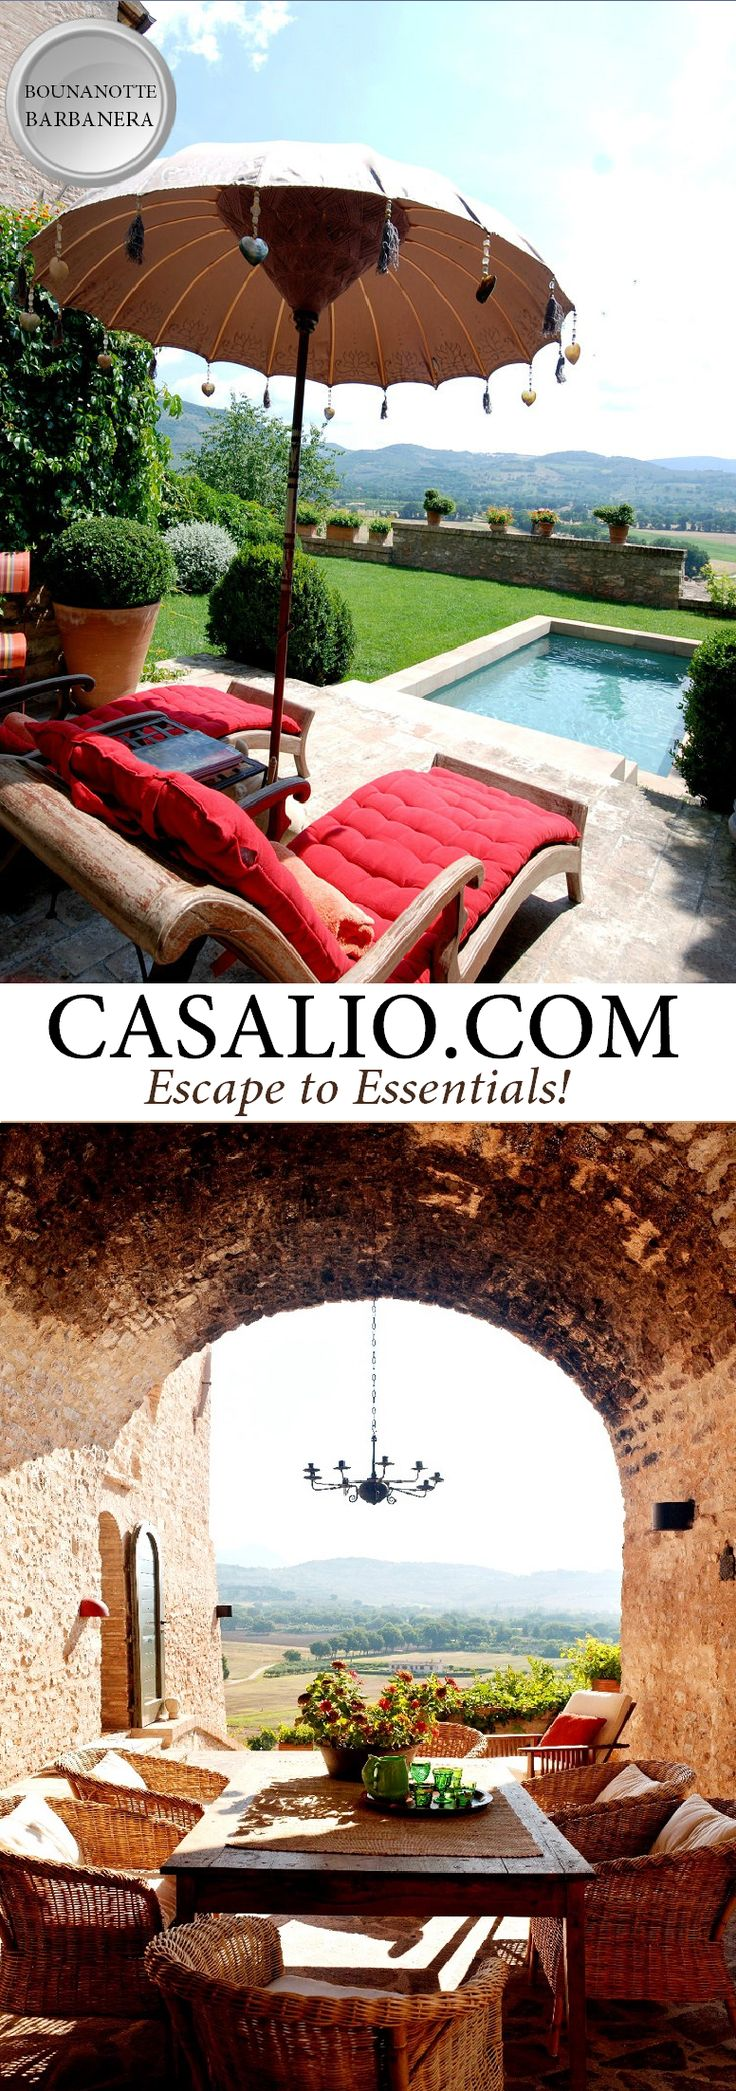 Umbria Holiday Villas -  www.casalio.com    Buonanotte Barbanera    Only a 2 hour drive from Rome and…